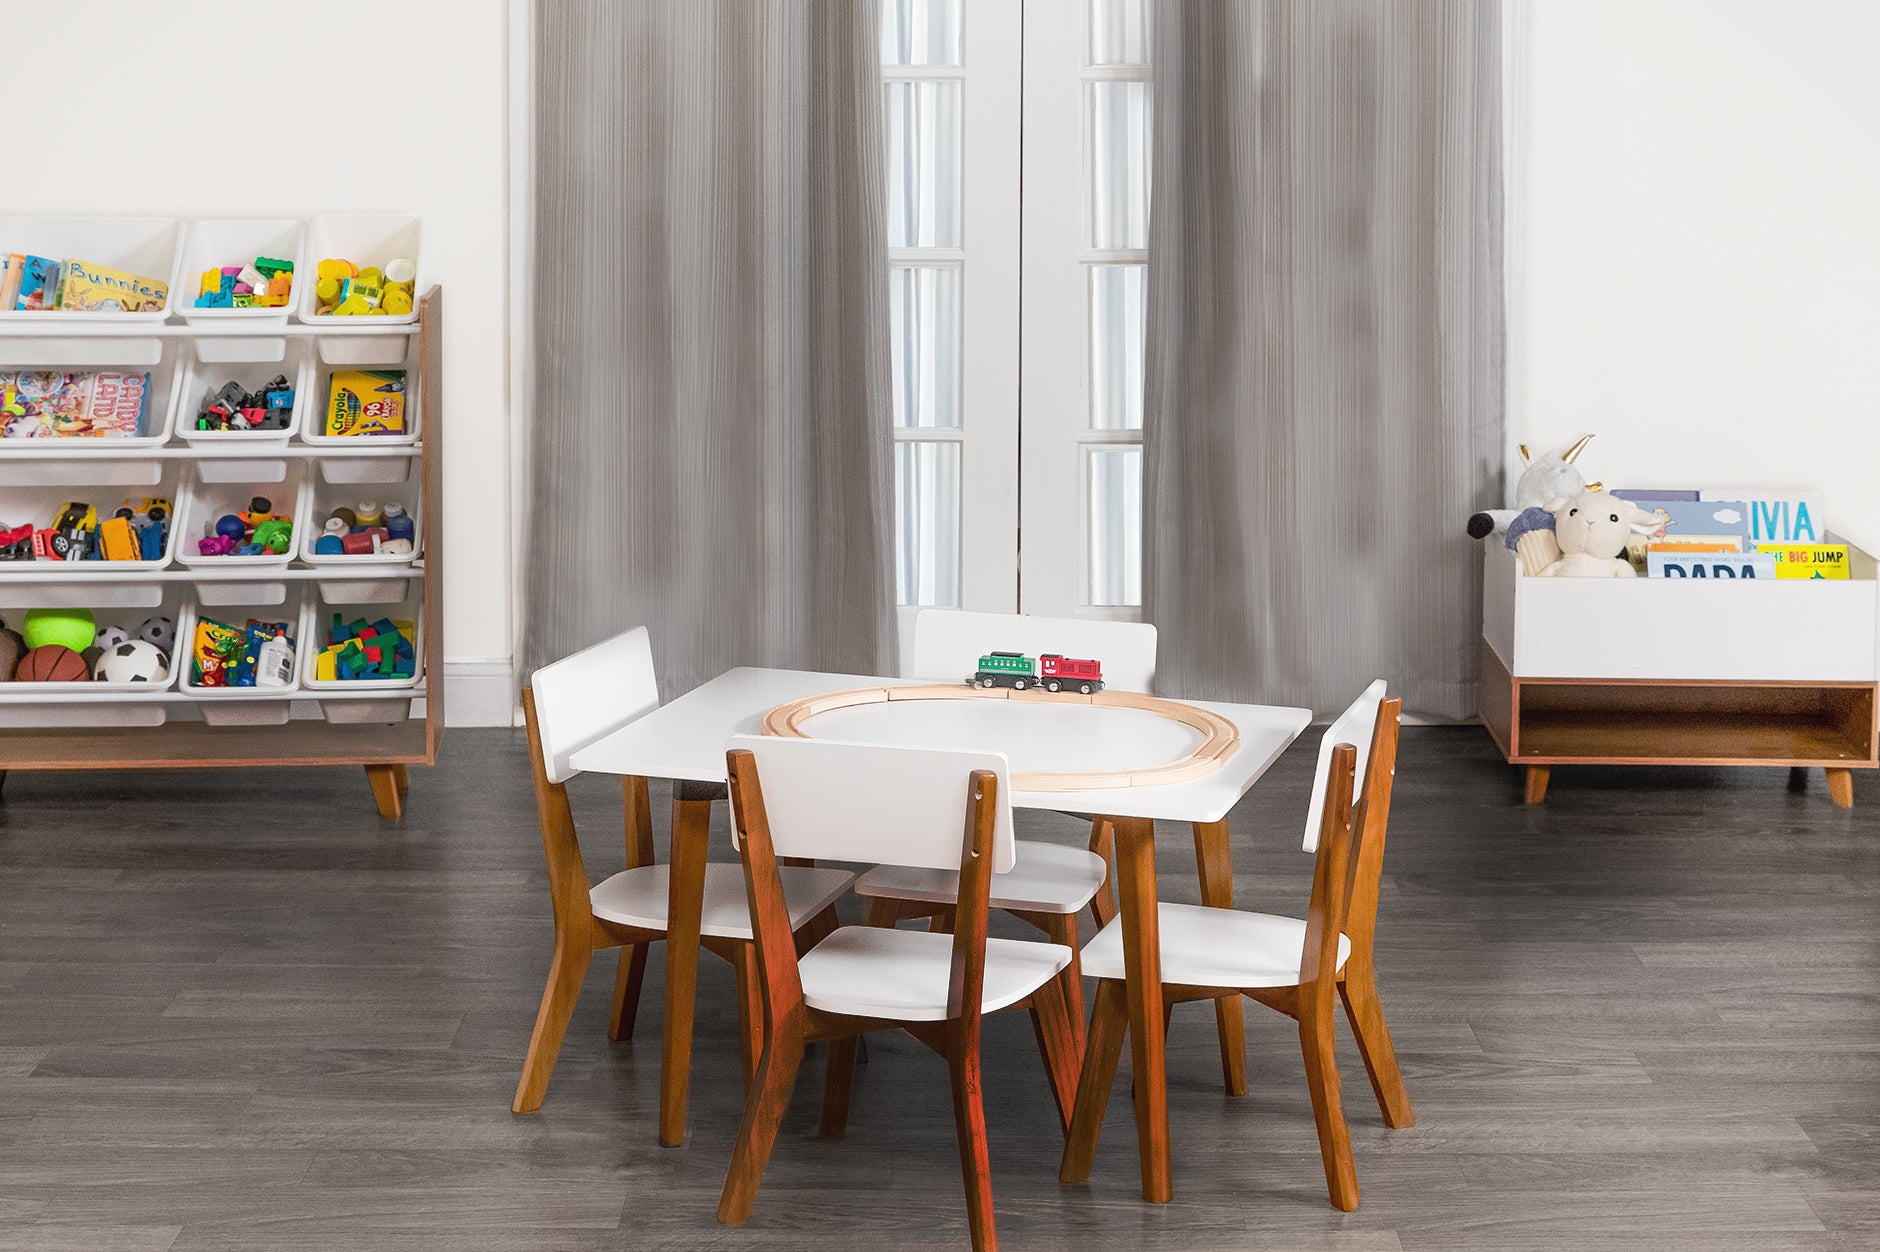 Function meets style. Introducing our Mid-Century Modern Kids Collection.